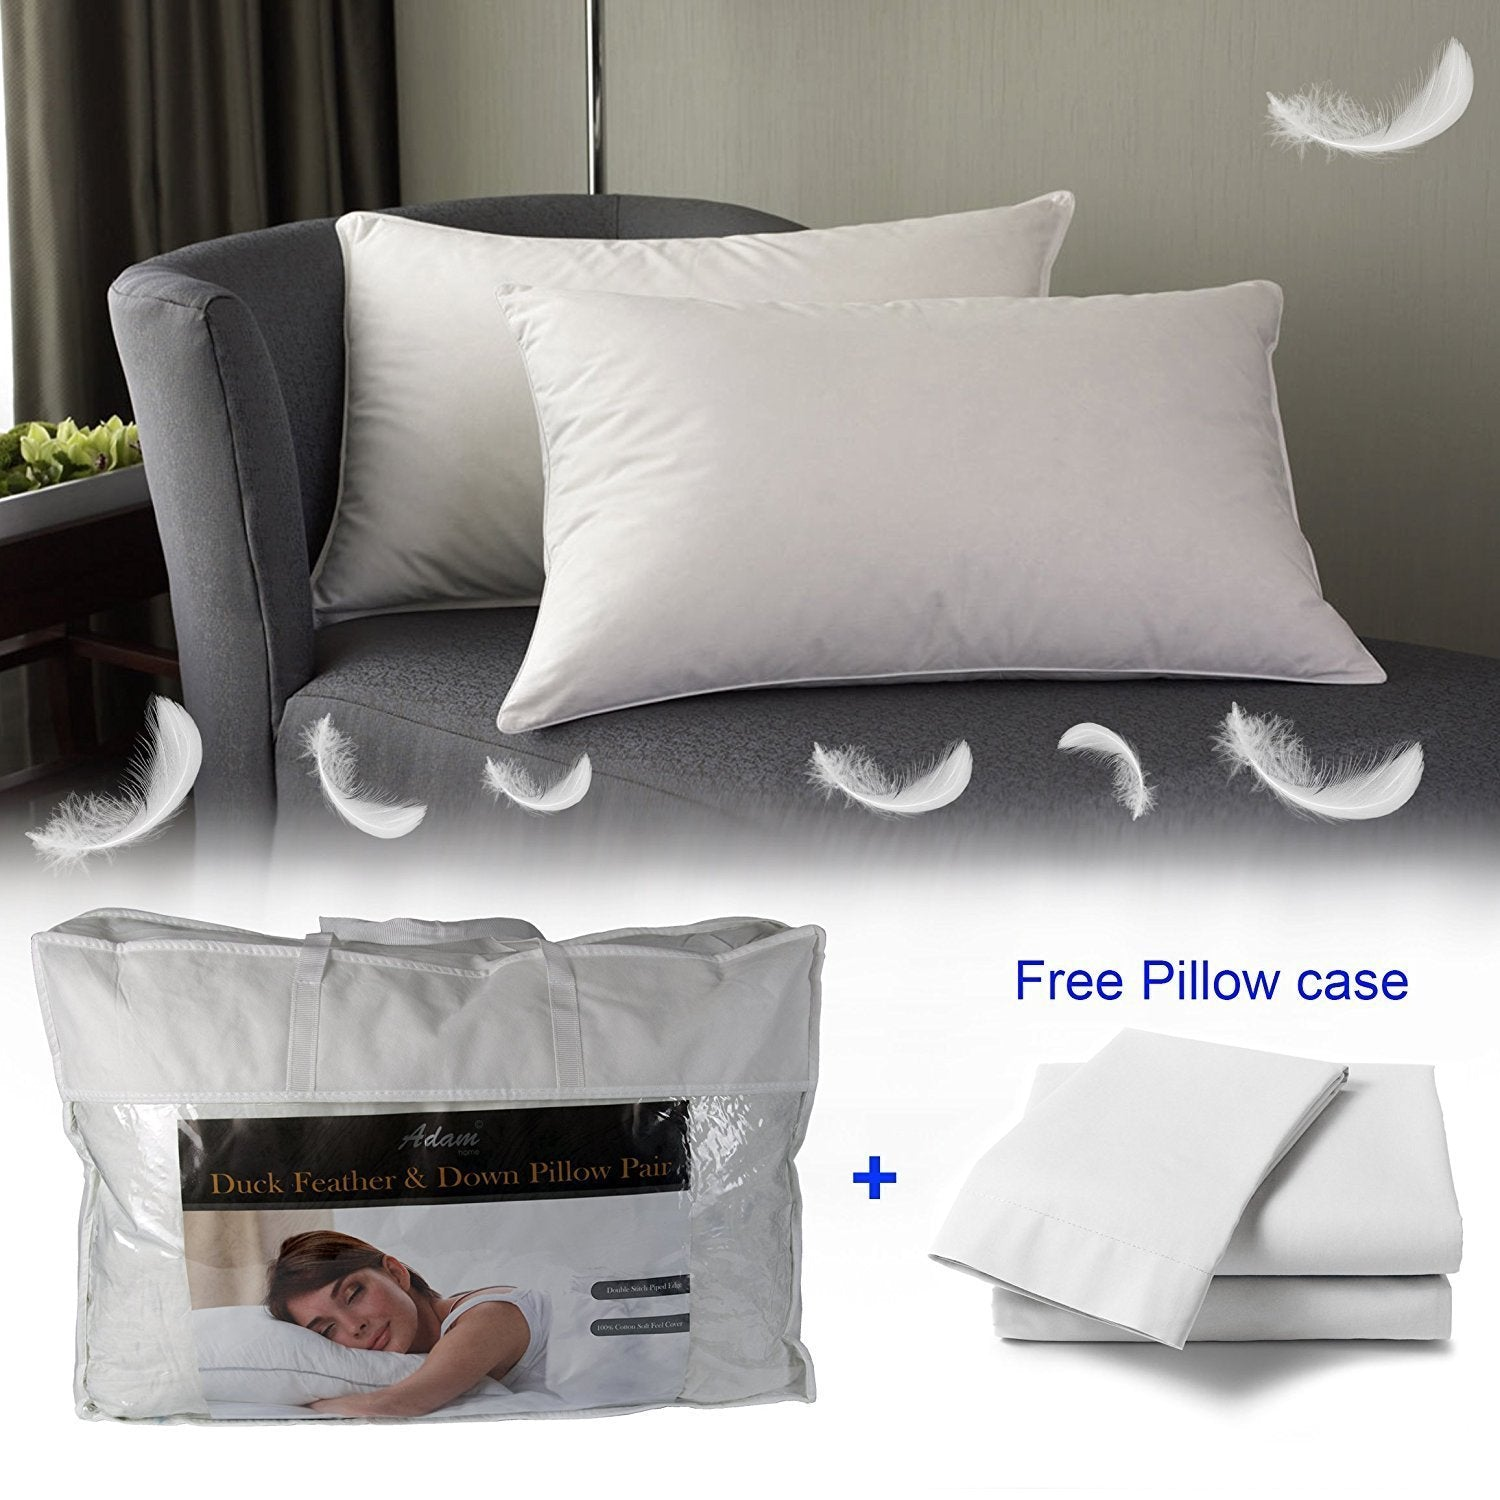 100% Cotton Cover with Extra Soft Filling - Hotel Quality Comfortable Bed Pillow